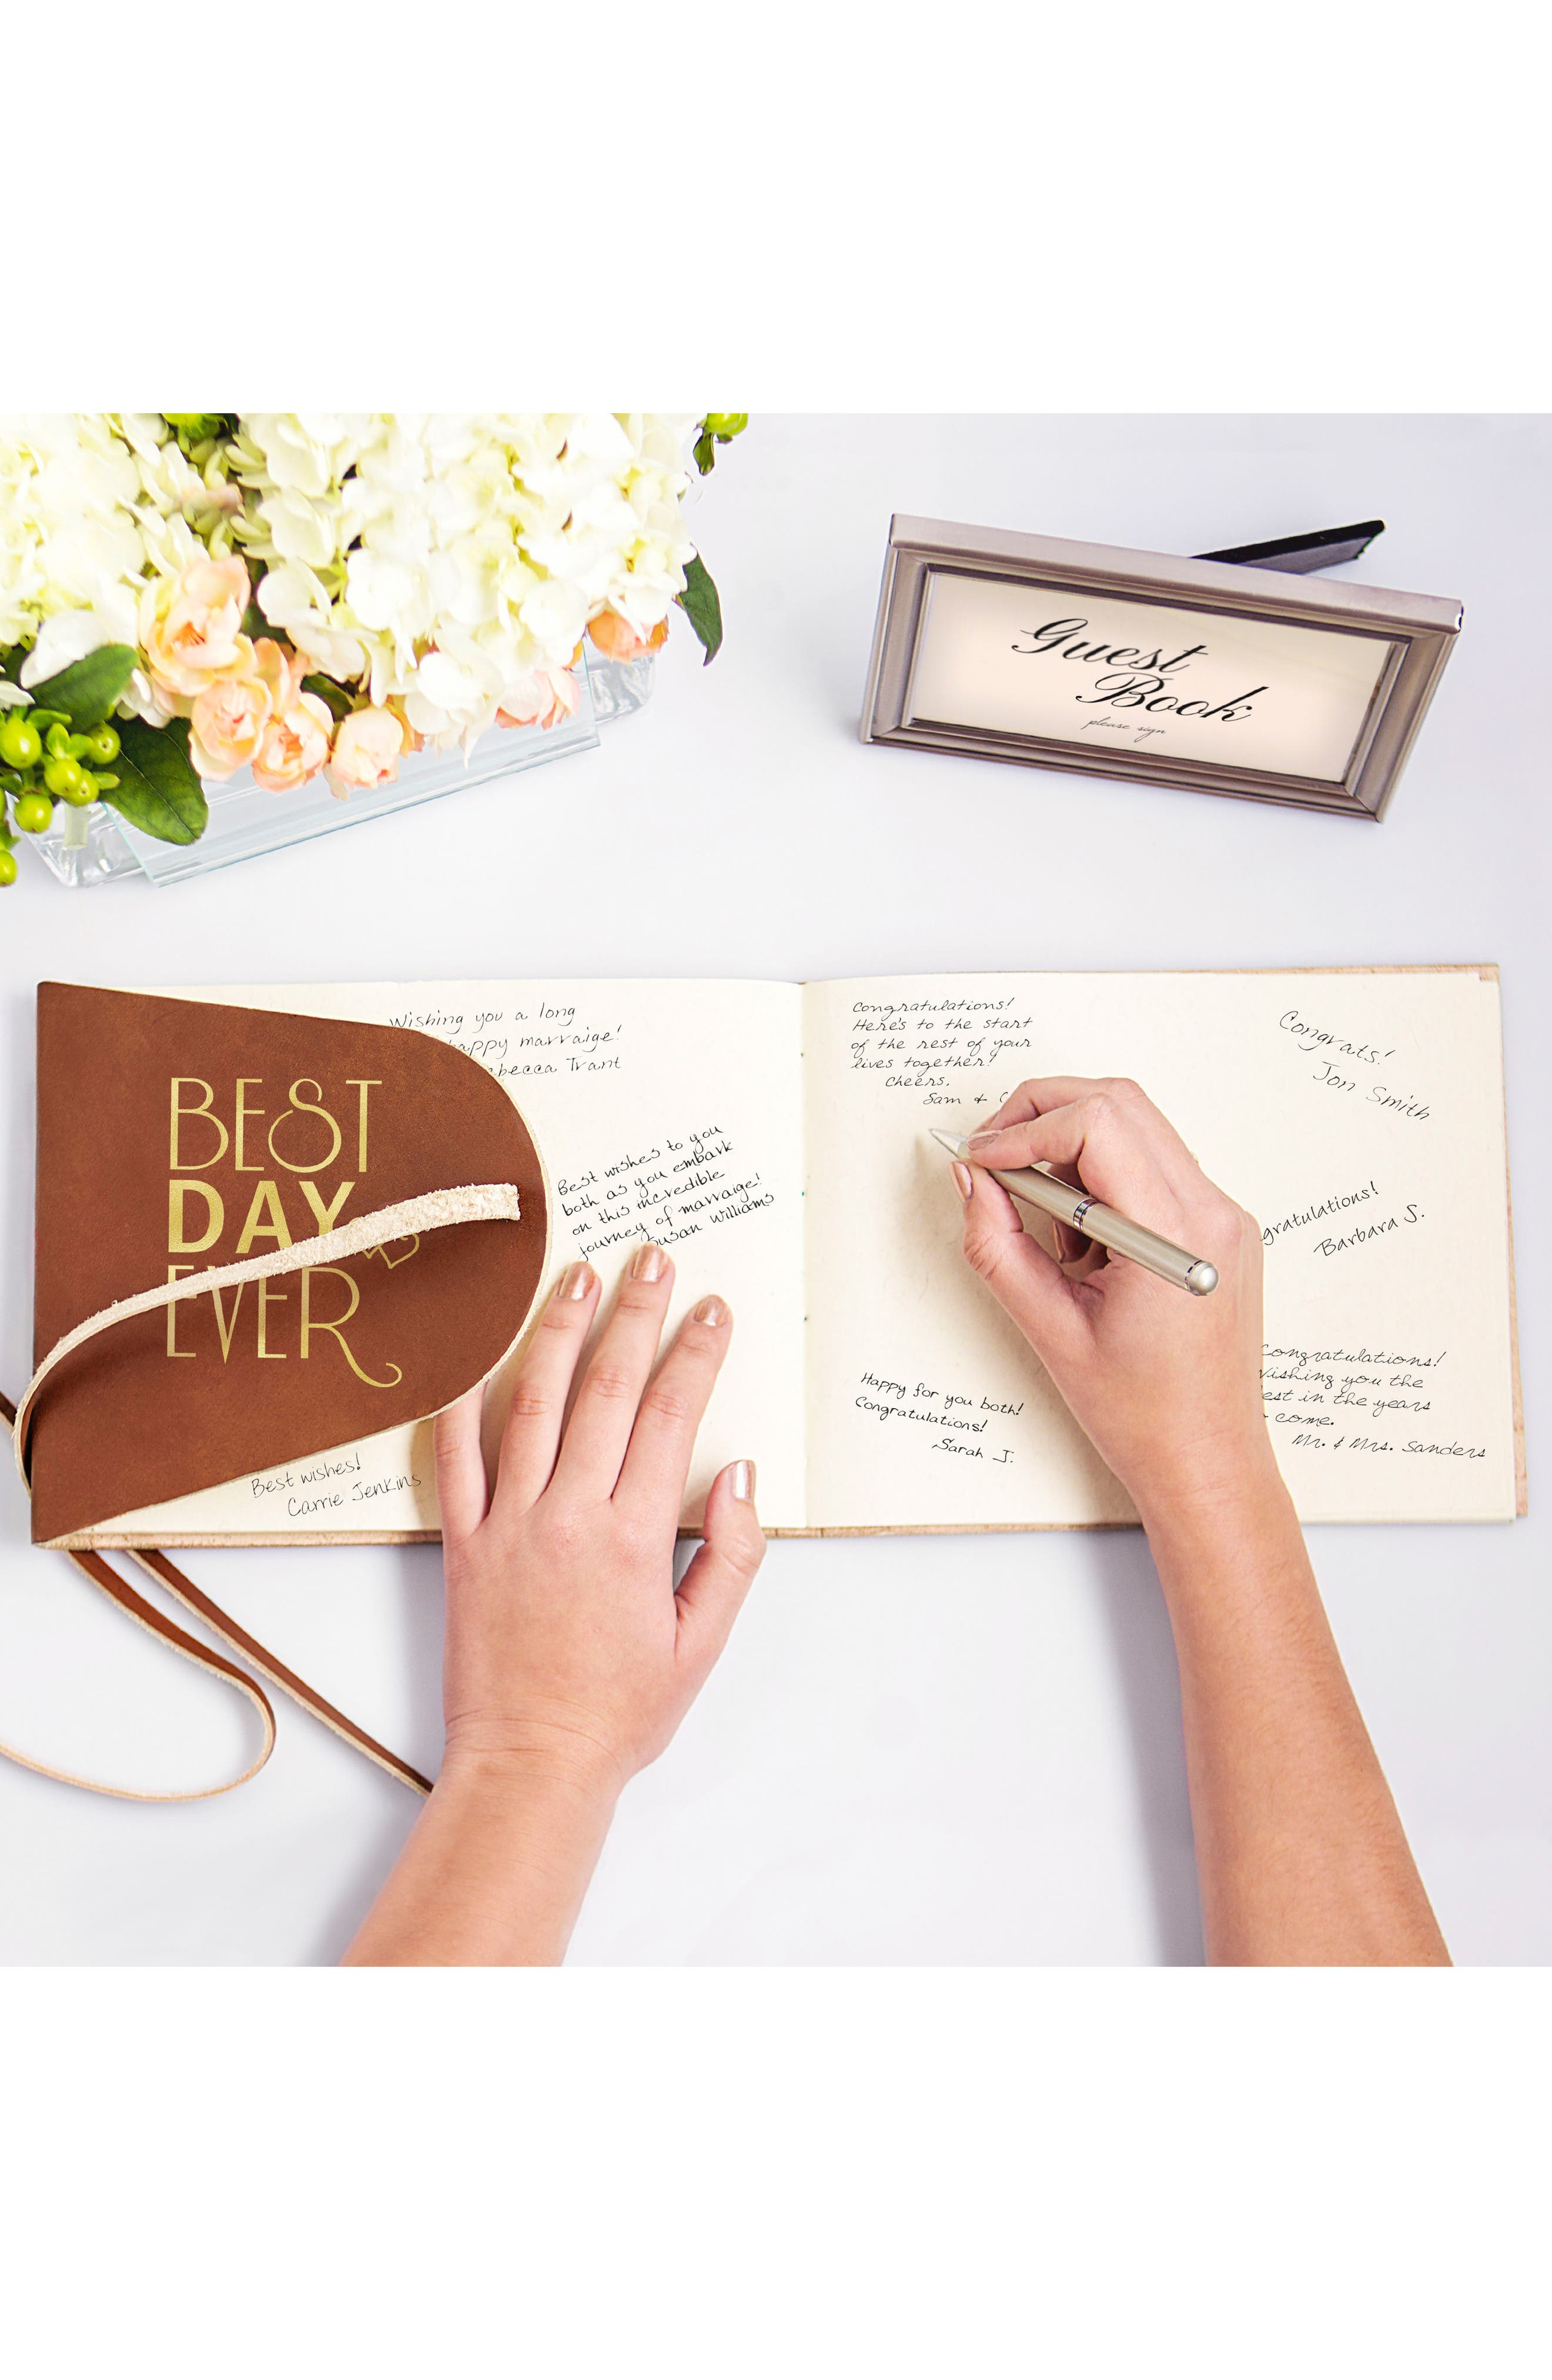 Best Day Ever Leather Guest Book,                             Alternate thumbnail 12, color,                             710